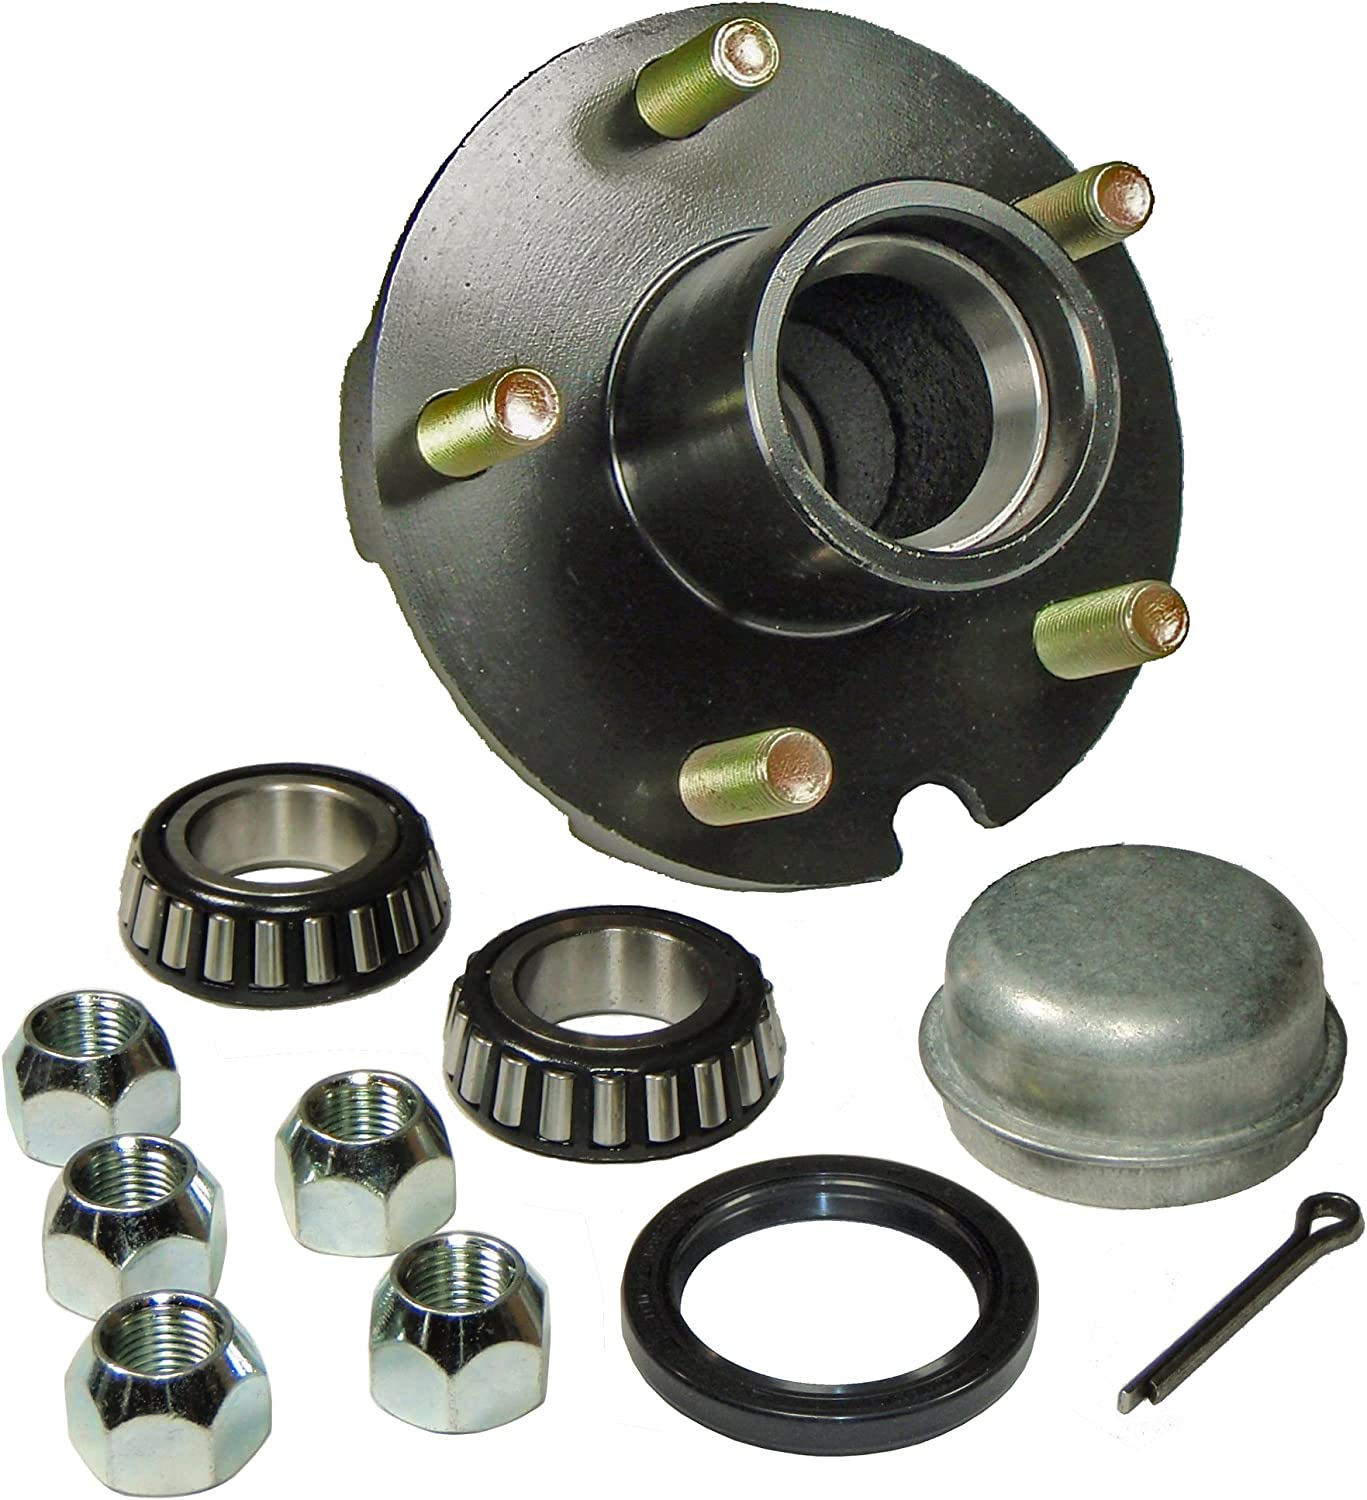 Rigid Hitch Trailer Hub Kit (BT-150-22-A) 5 Bolt on 4-1/2 Inch Circle - 1-1/16 inch I.D. Bearings